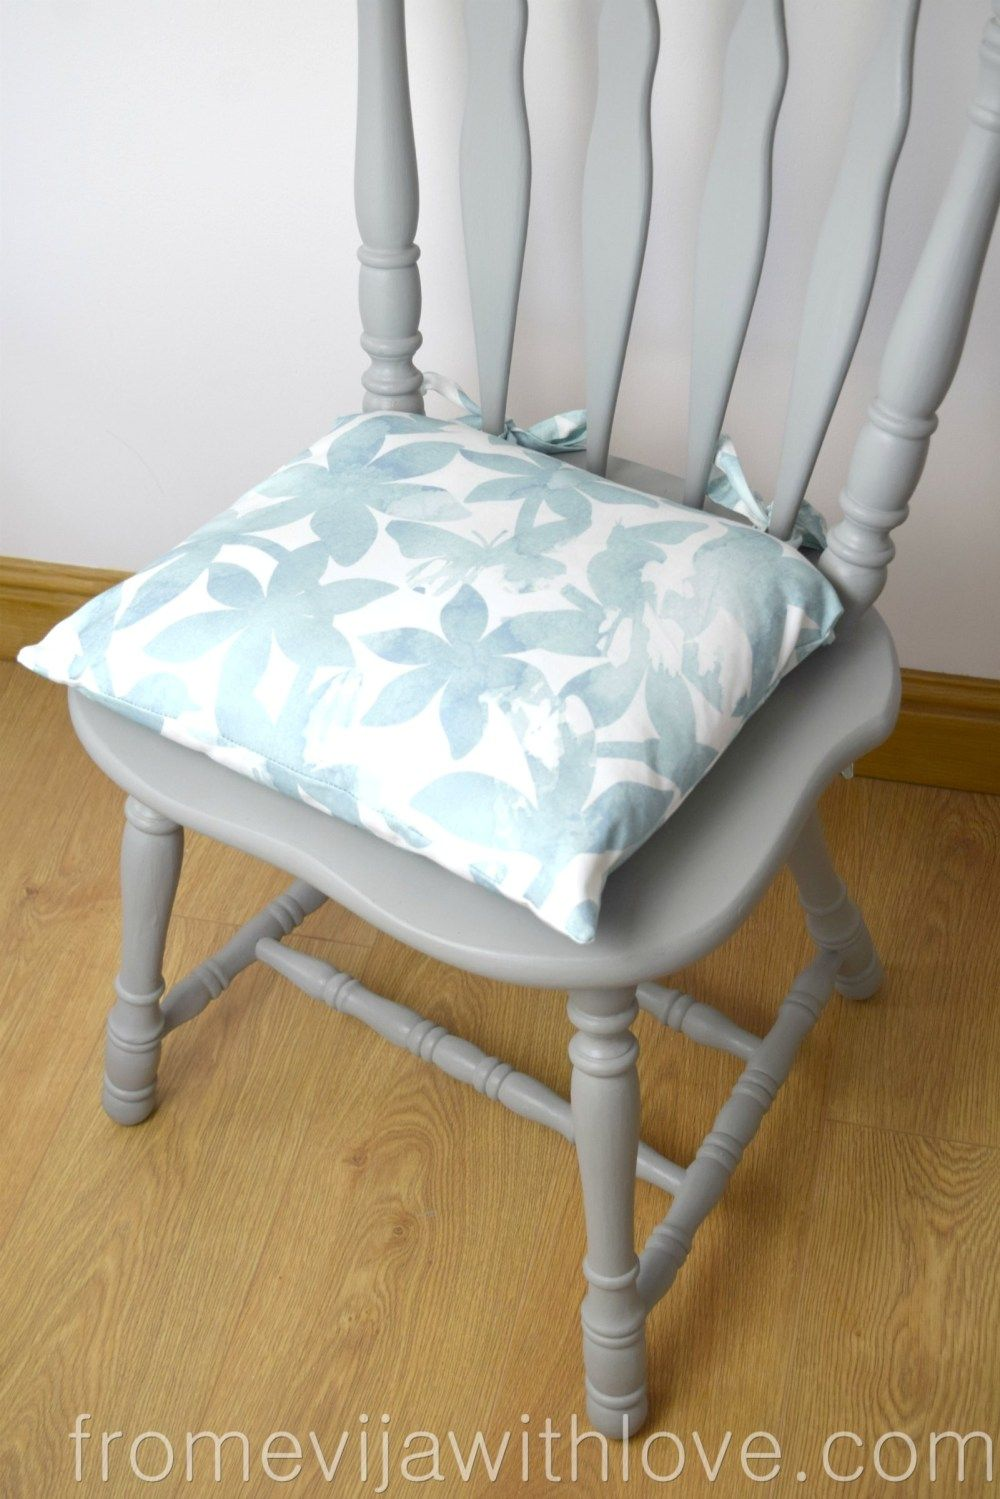 How To Make A Chair Cushion With Ties From Evija With Love Kitchen Chair Cushions Diy Chair Cushions Seat Cushions Diy